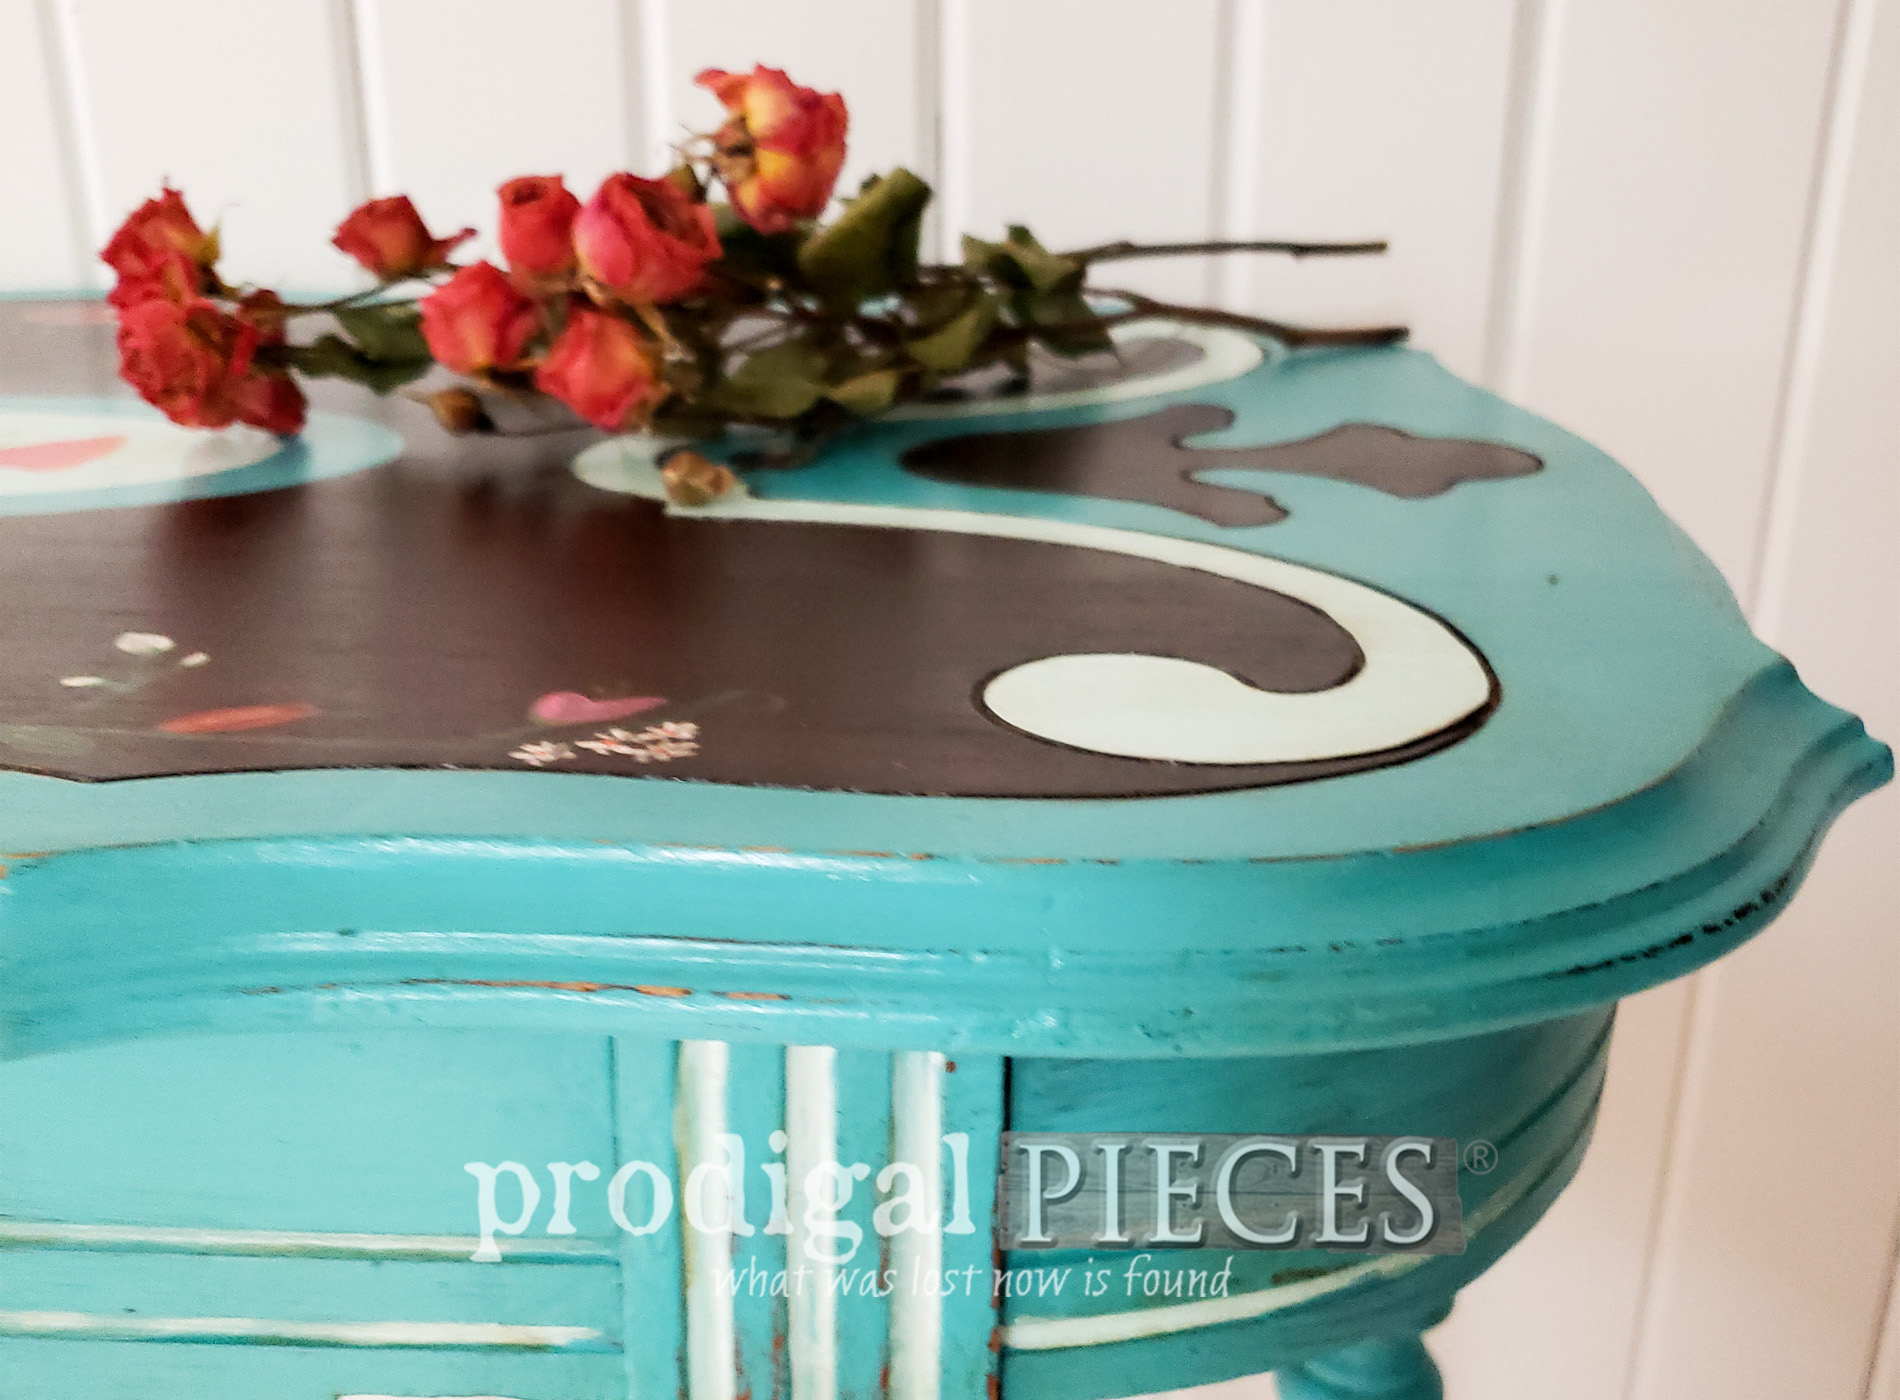 Featured Ornate Antique Table with Teal Blue by Larissa of Prodigal Pieces | prodigalpieces.com #prodigalpieces #diy #home #furniture #homedecor